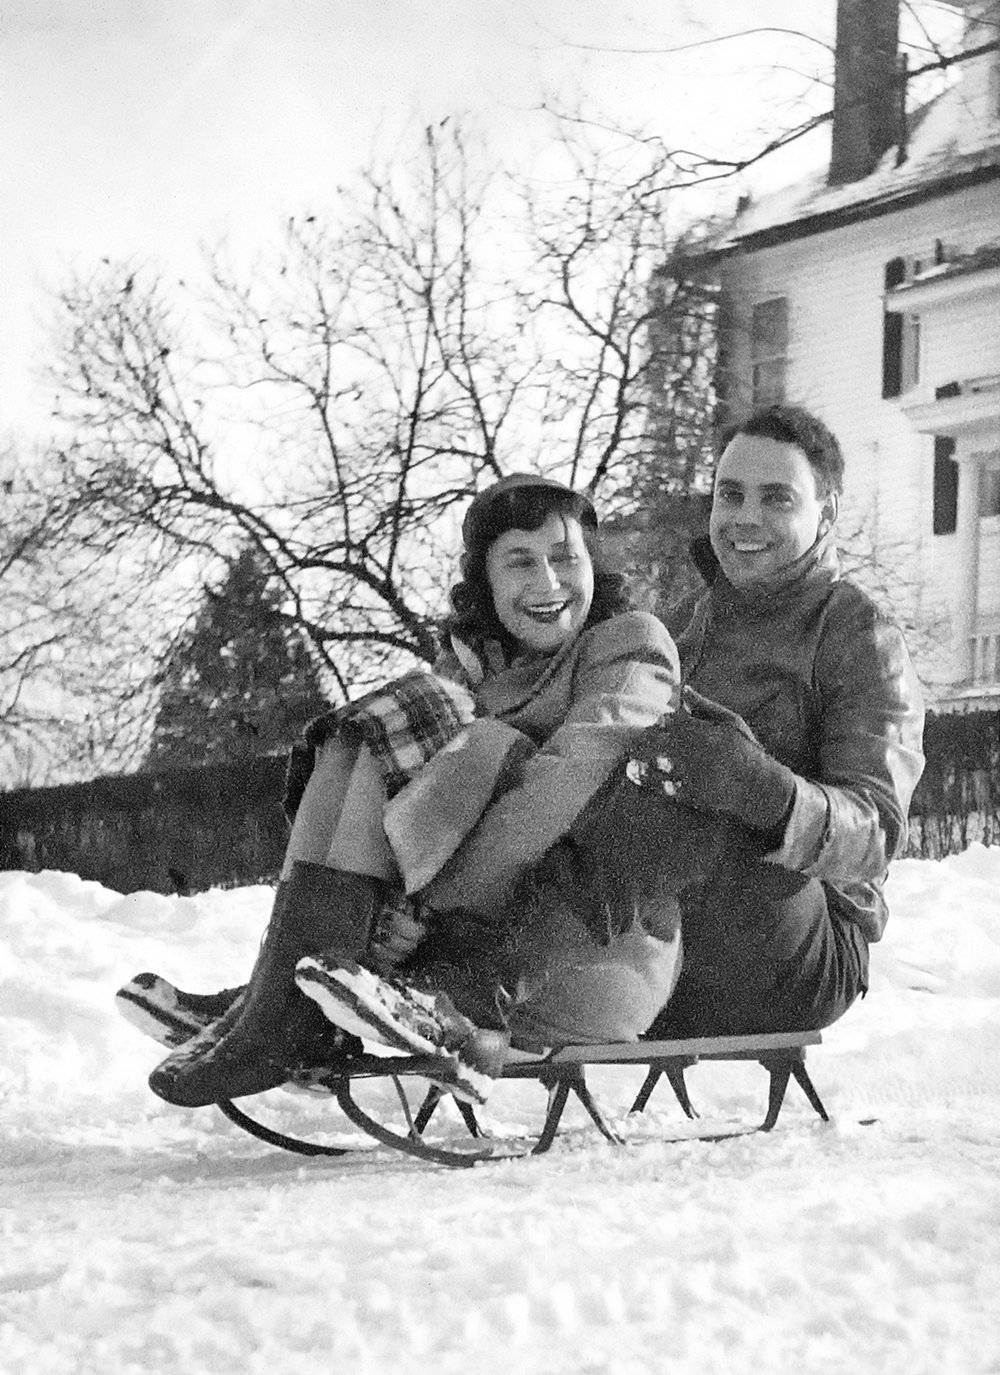 Anne and Doug sledding in Mt. Washington, Winter of 1947-48